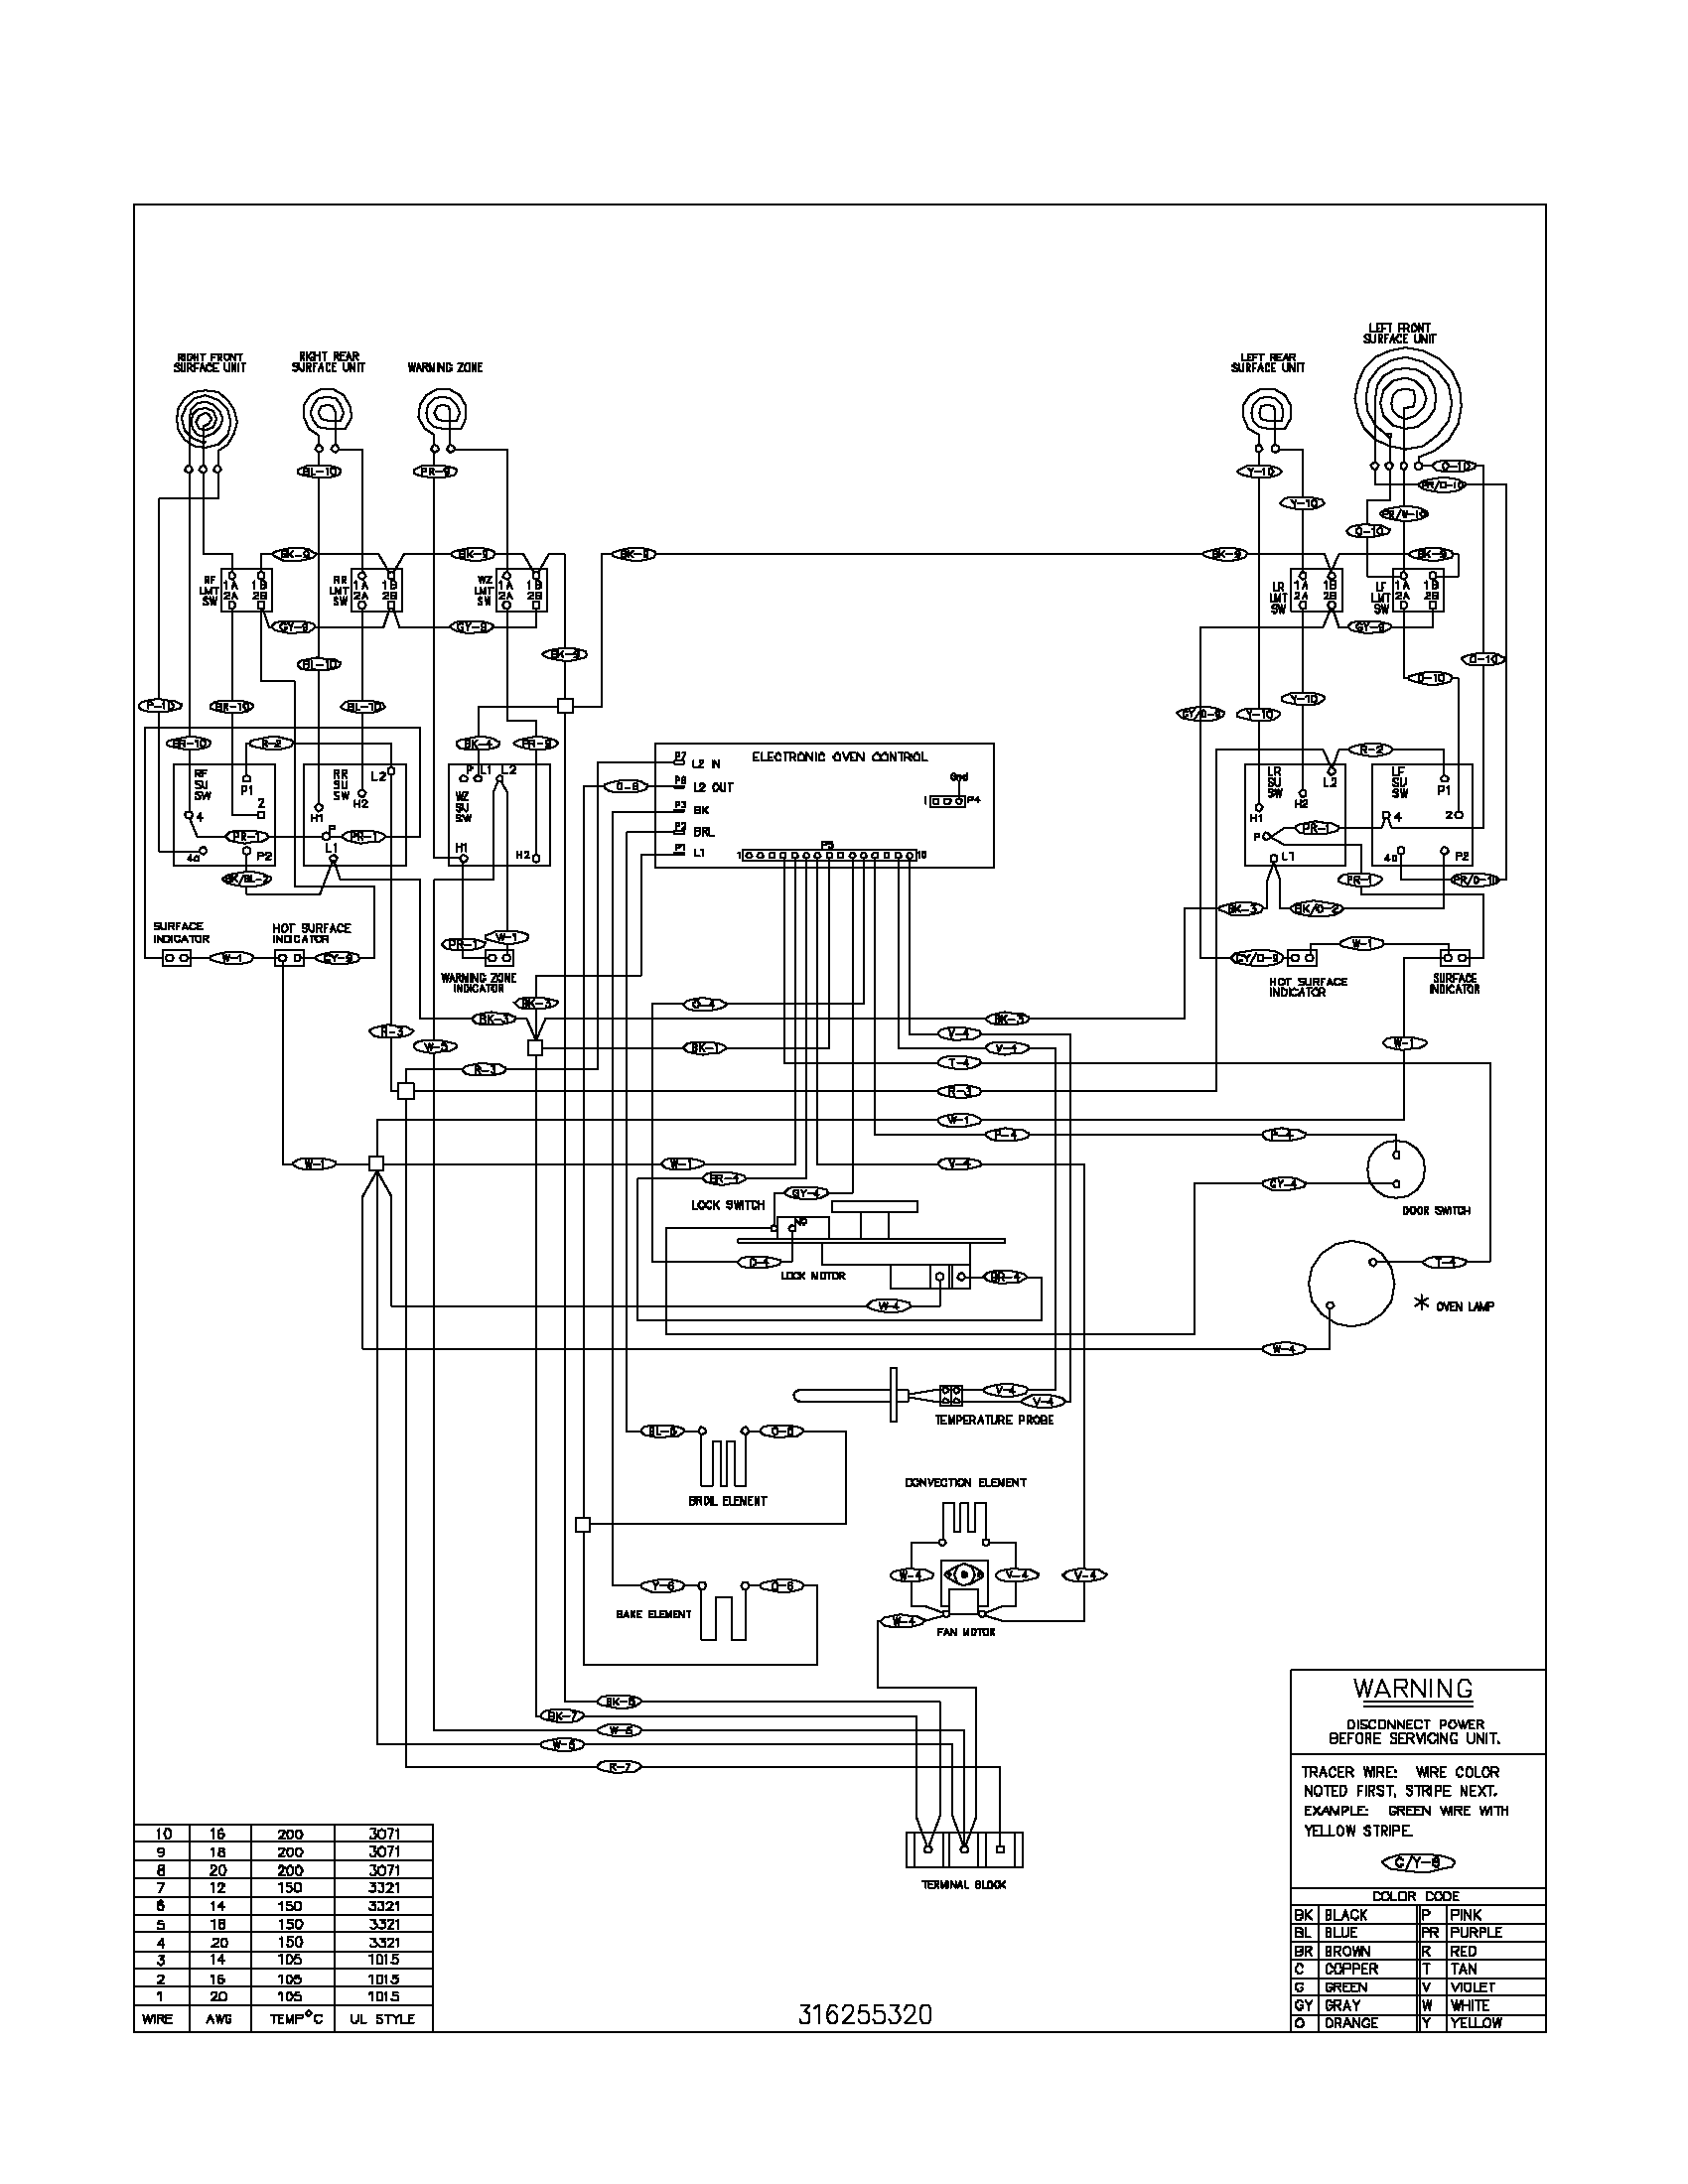 whirlpool wall oven wiring diagram images need a wiring diagram whirlpool wall oven wiring diagram images need a wiring diagram for kitchenaid dual oven model keb5277xwho check the current draw on valve igniter system